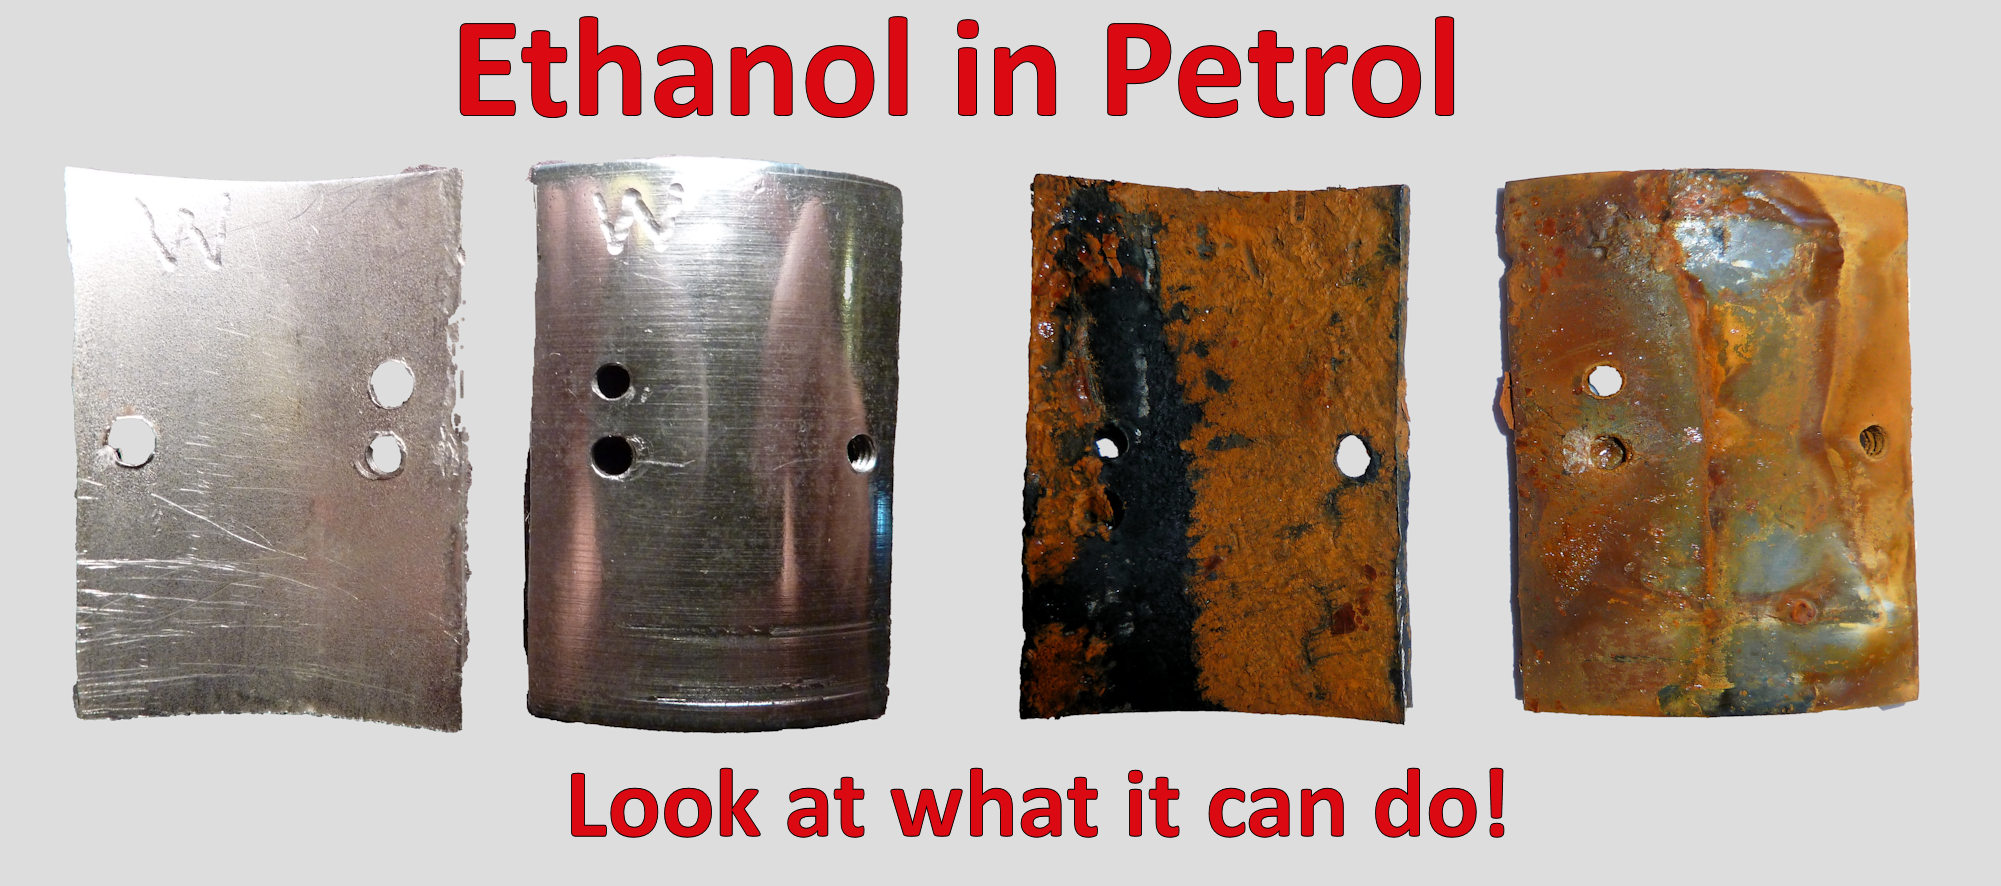 Picture showing the effects of ethanol blended petrol